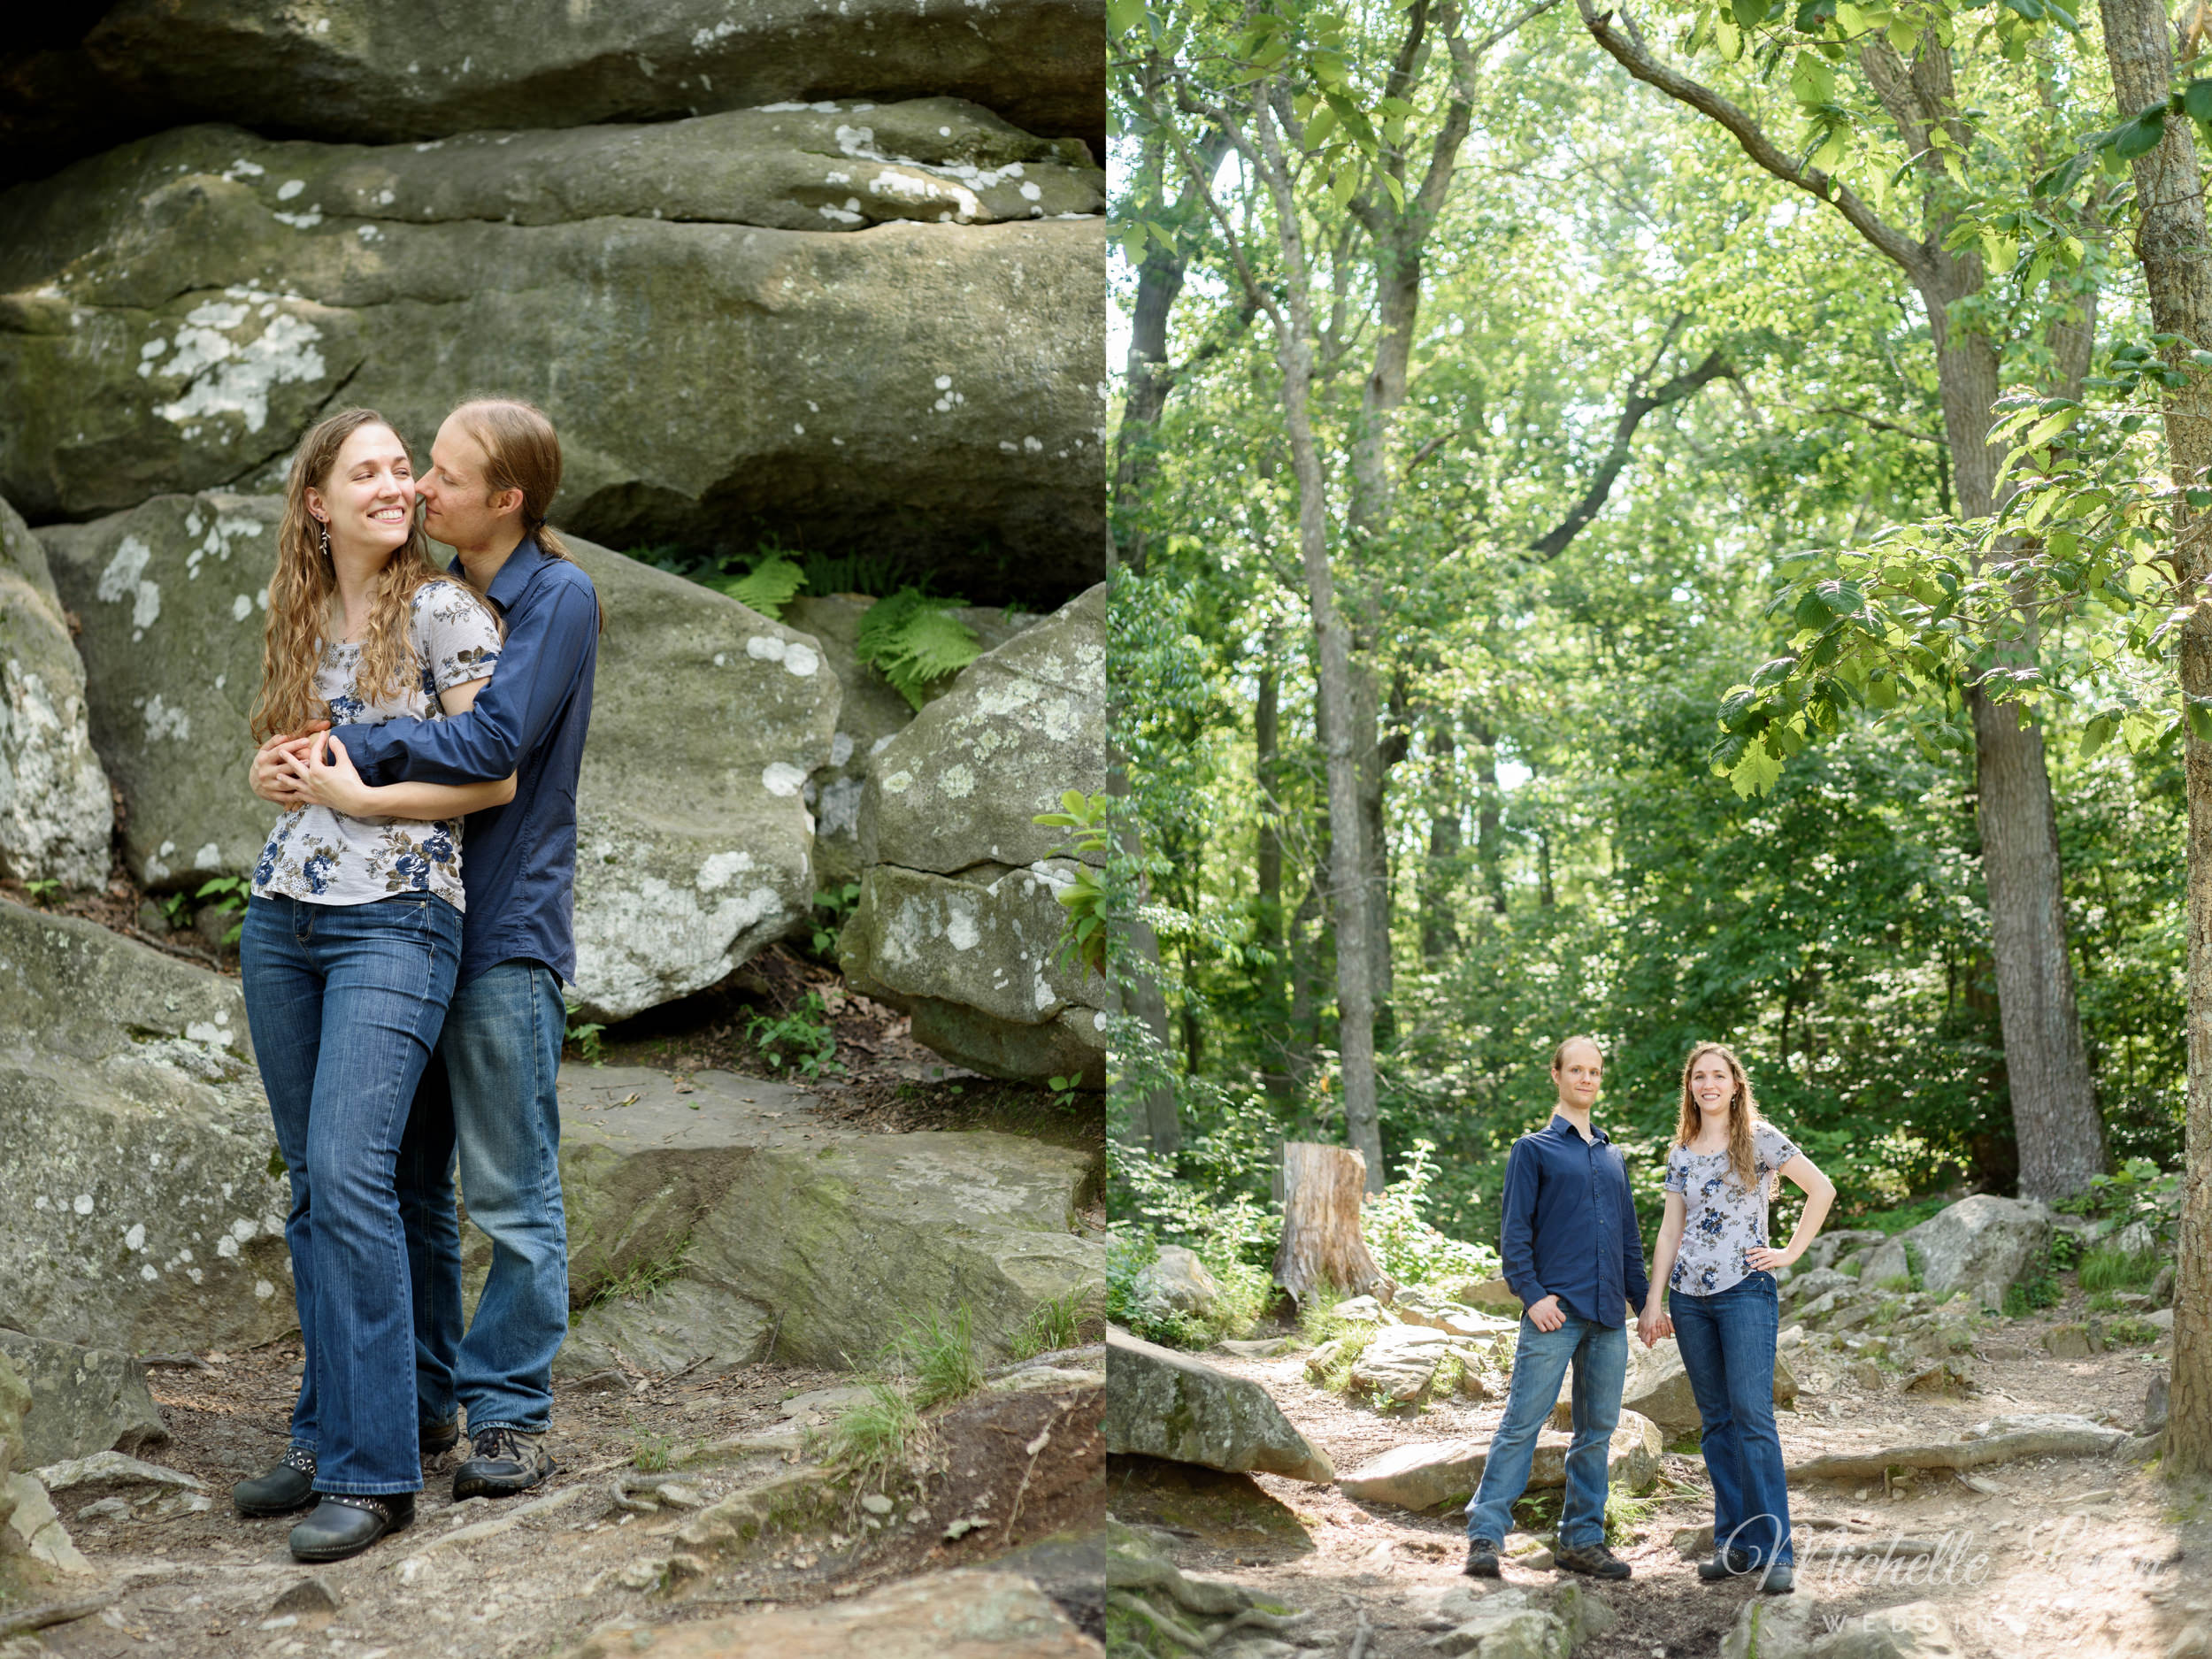 mlw-rocks-state-park-maryland-engagement-photos-6.jpg